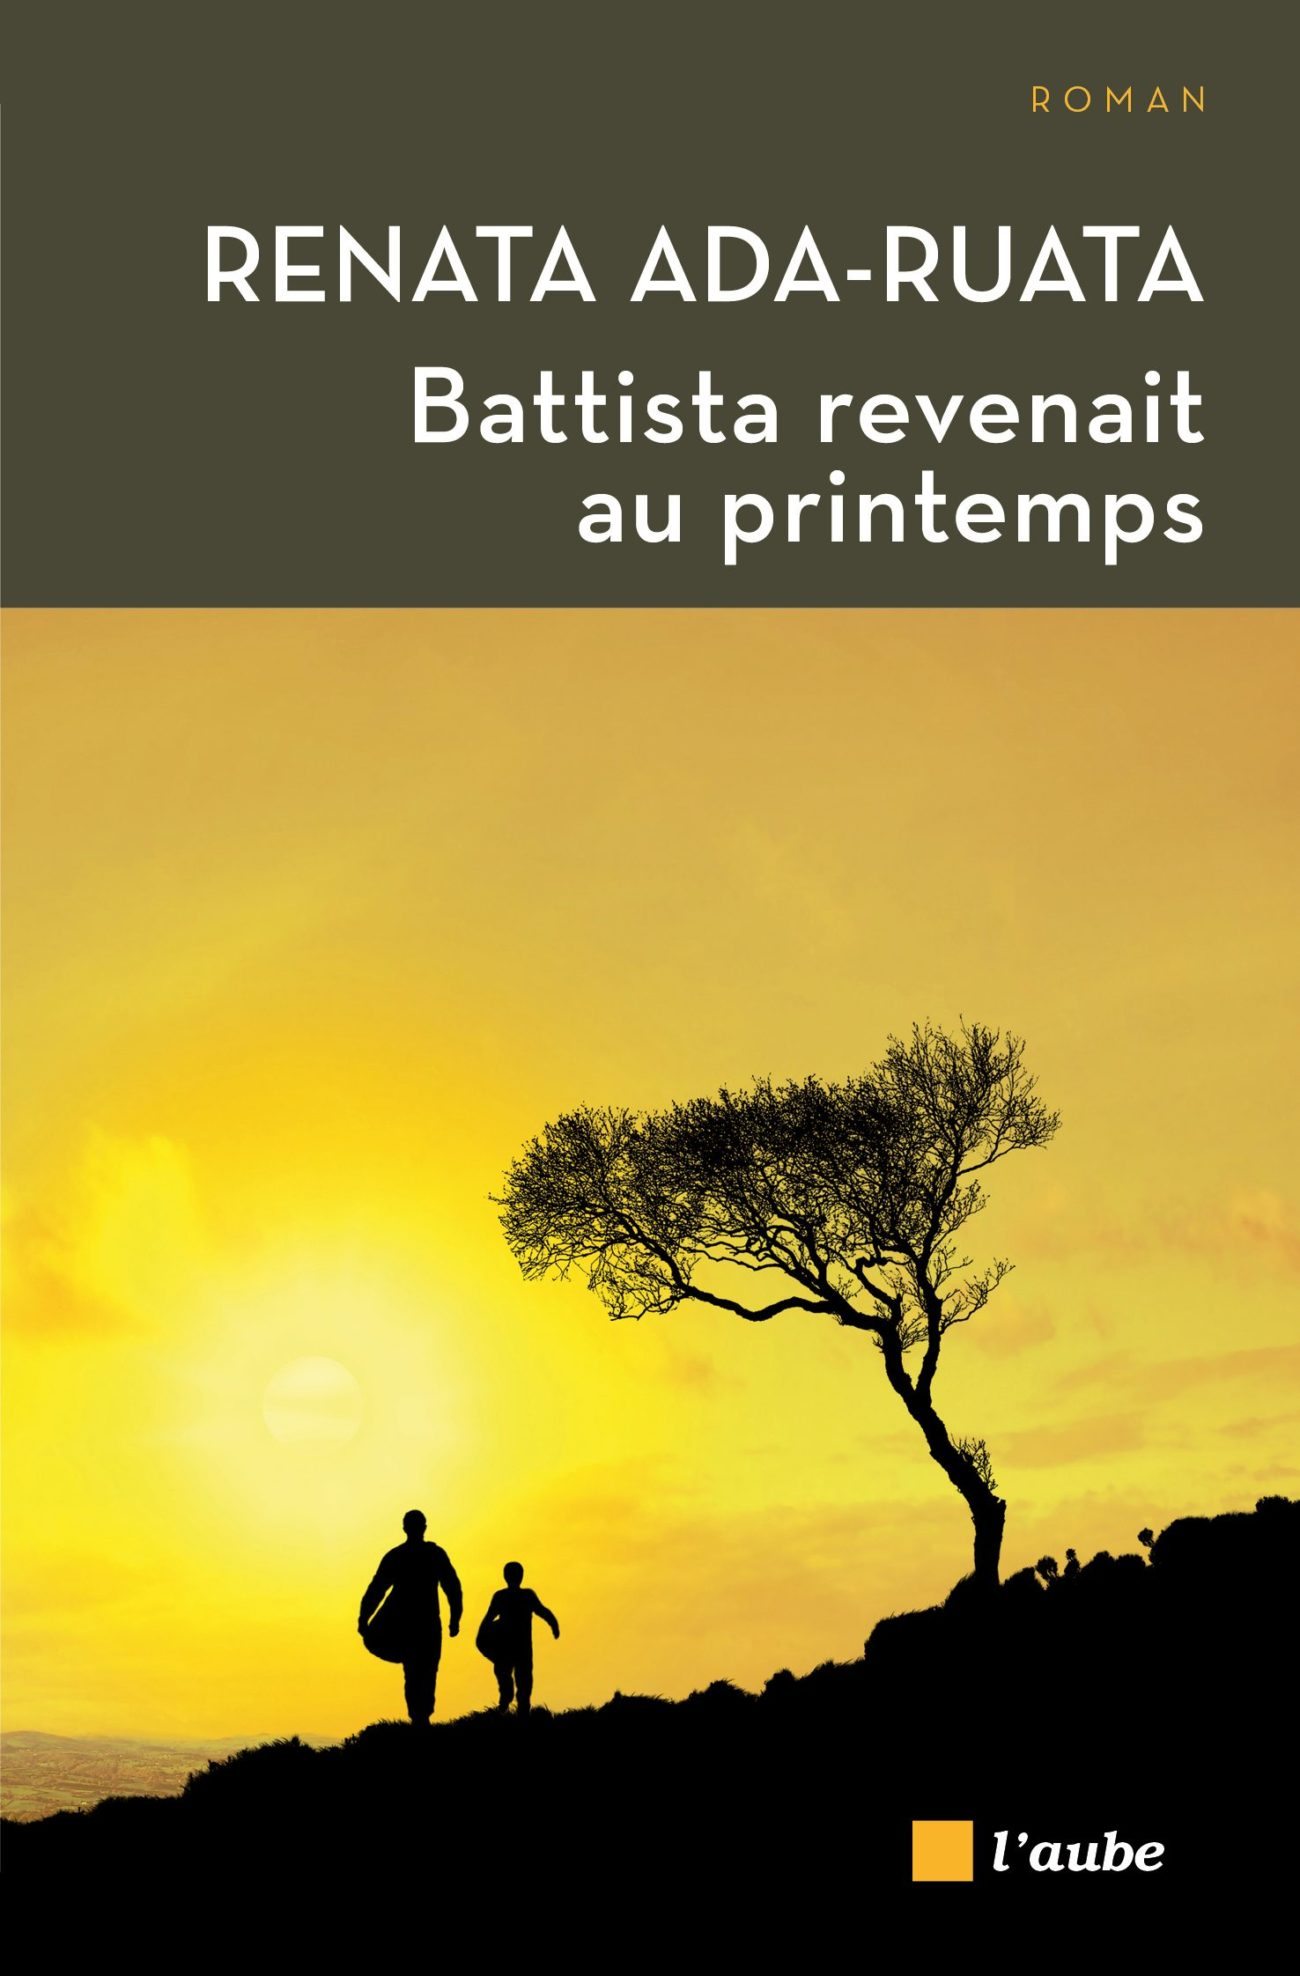 Battista revenait au printemps